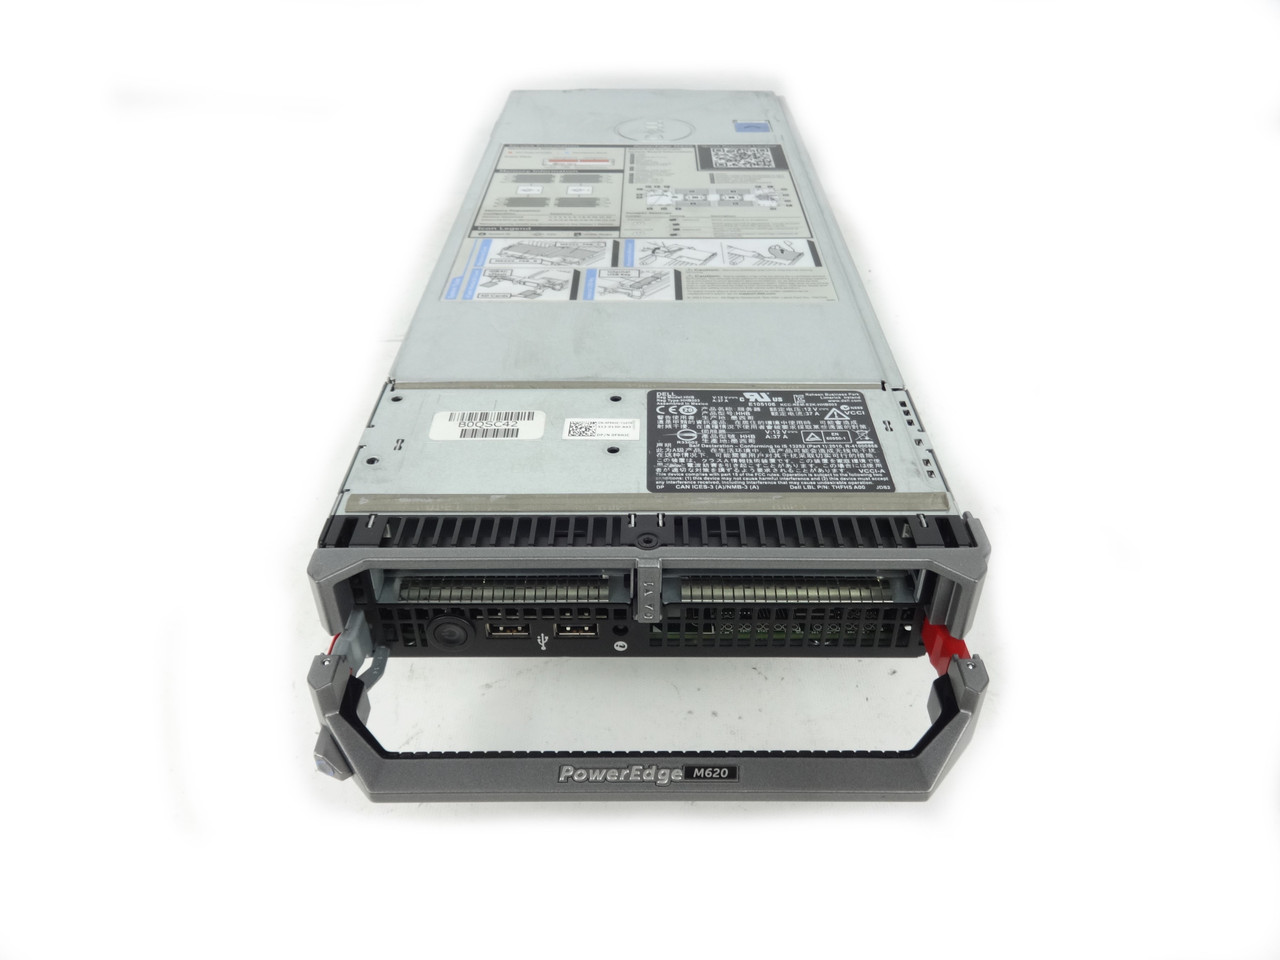 Dell Poweredge M620 Blade Server Build to Order